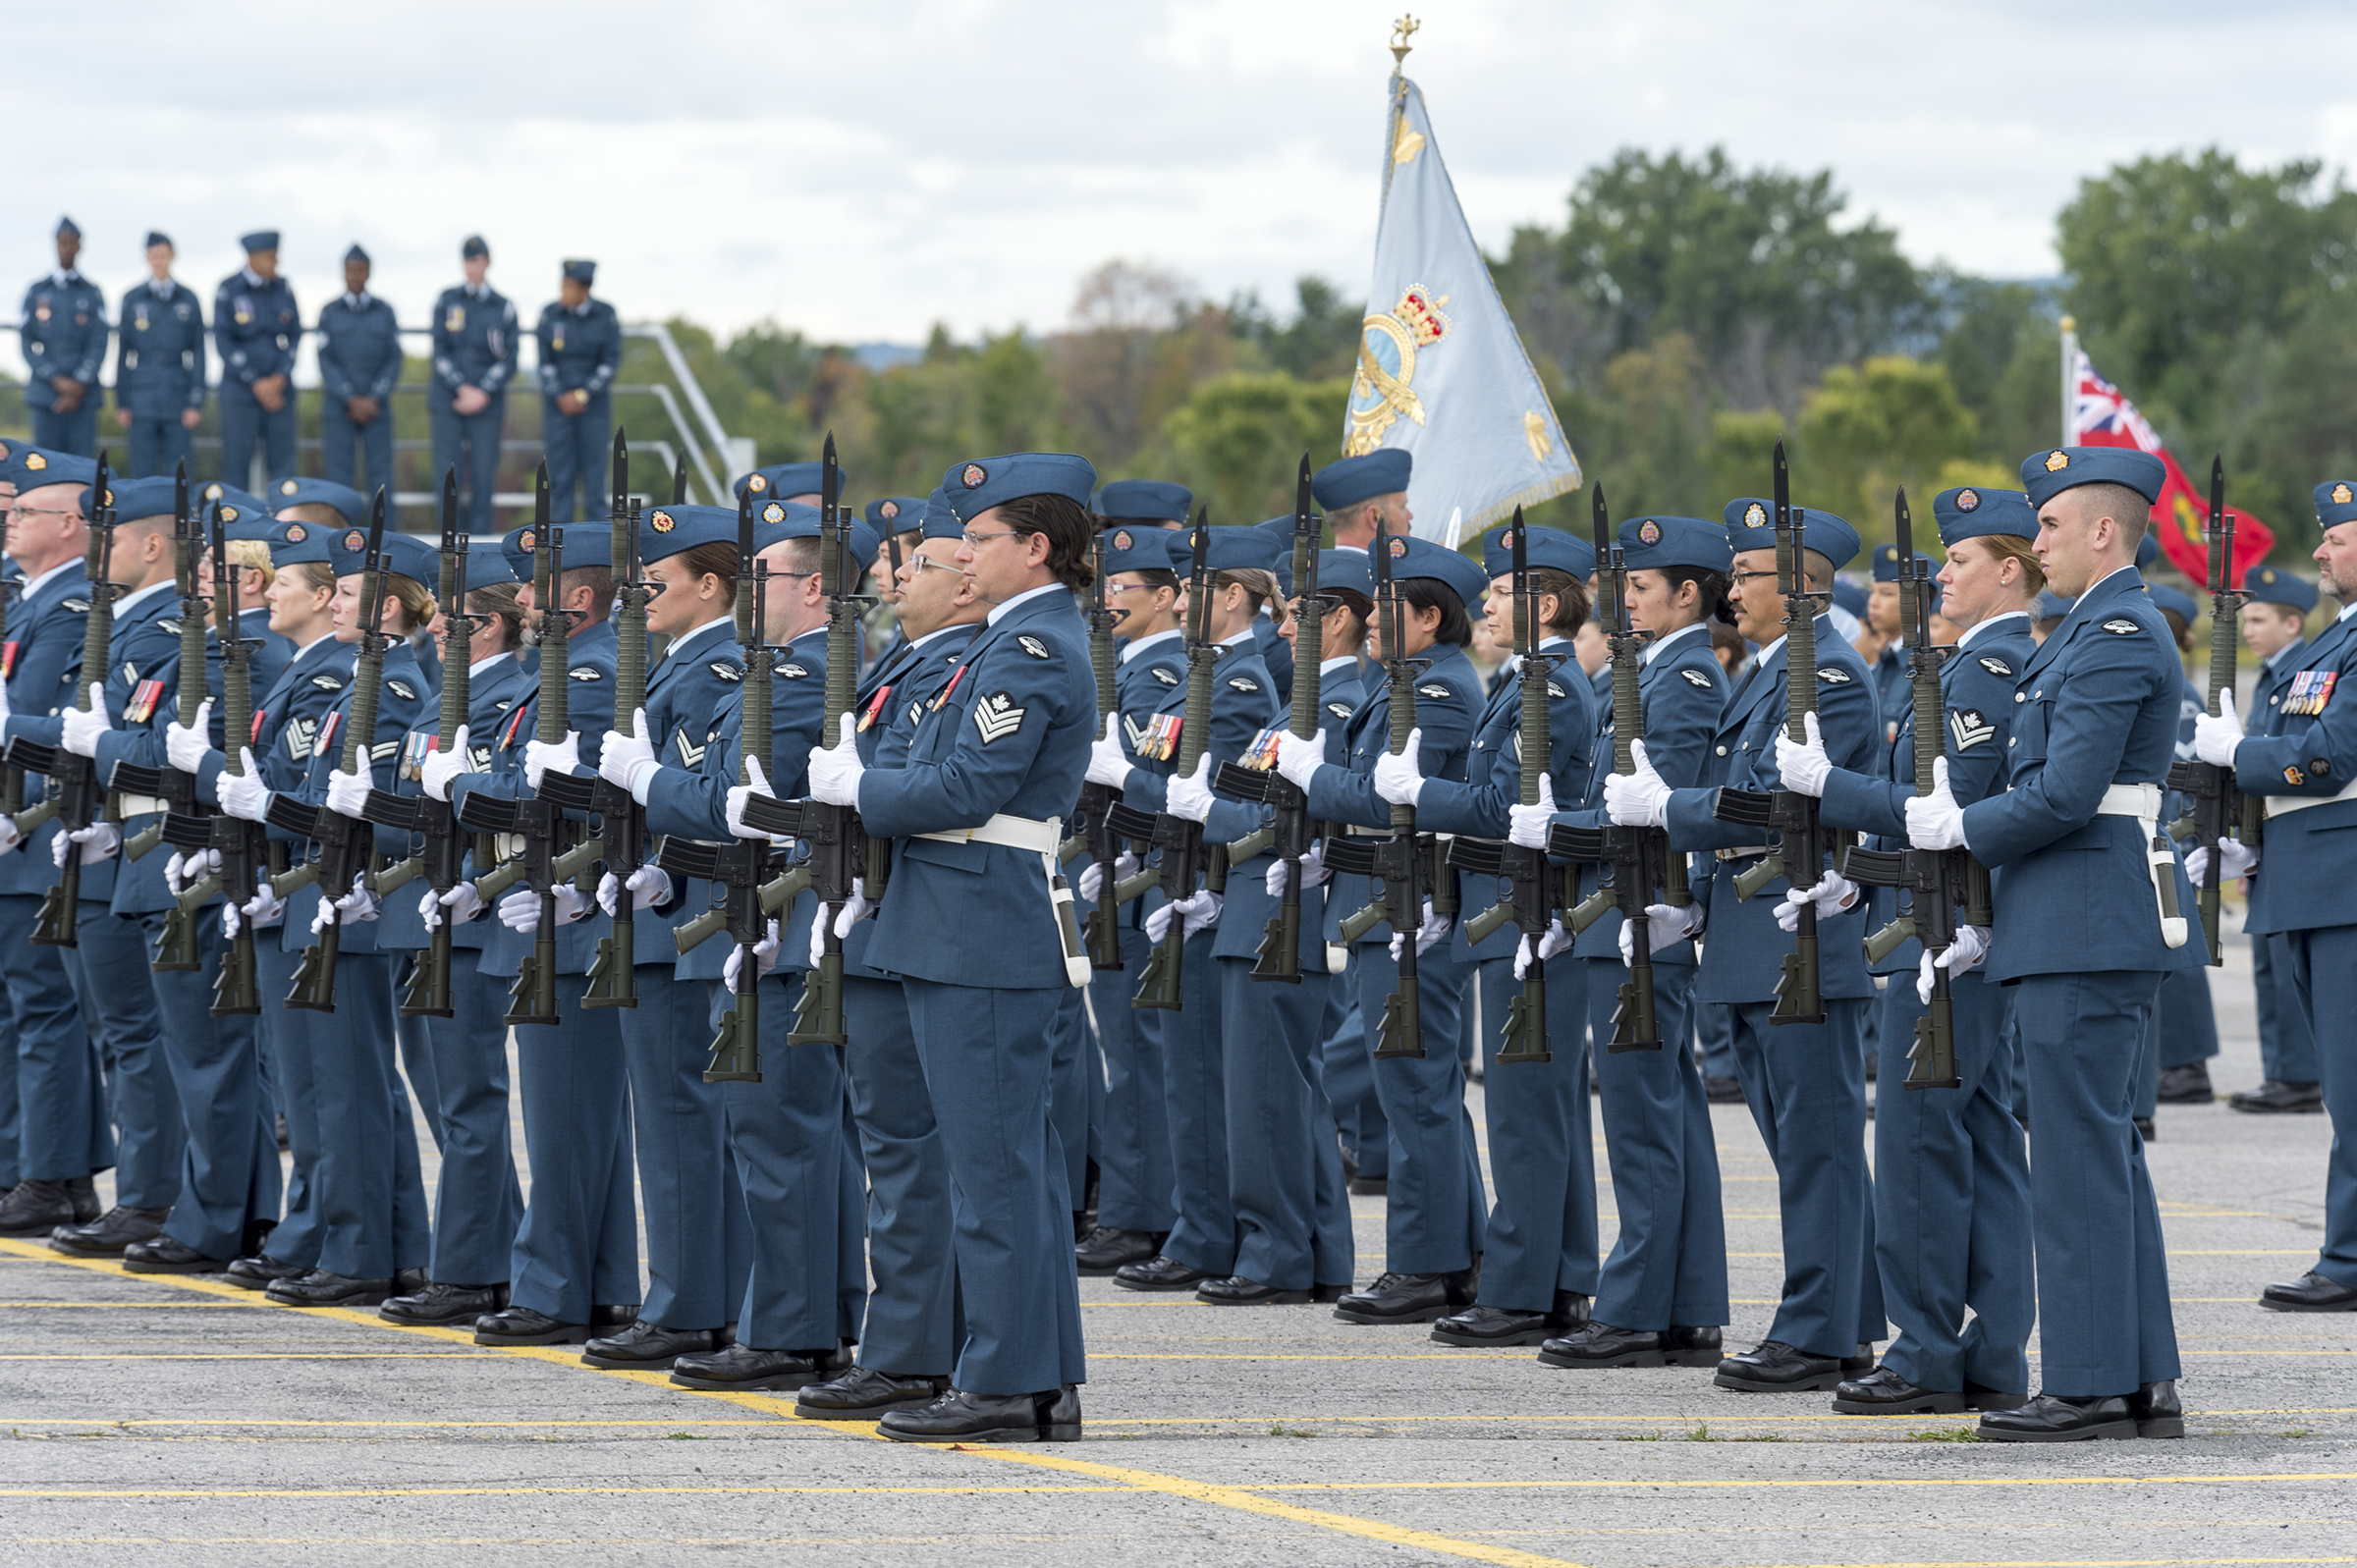 RCAF personnel present arms (which is a salute with rifles) during the national Battle of Britain parade held September 15, 2019, at the Canada Aviation and Space Museum in Ottawa, Ontario. PHOTO: Aviator Jacob Hanlon, FA01-2019-0008-025